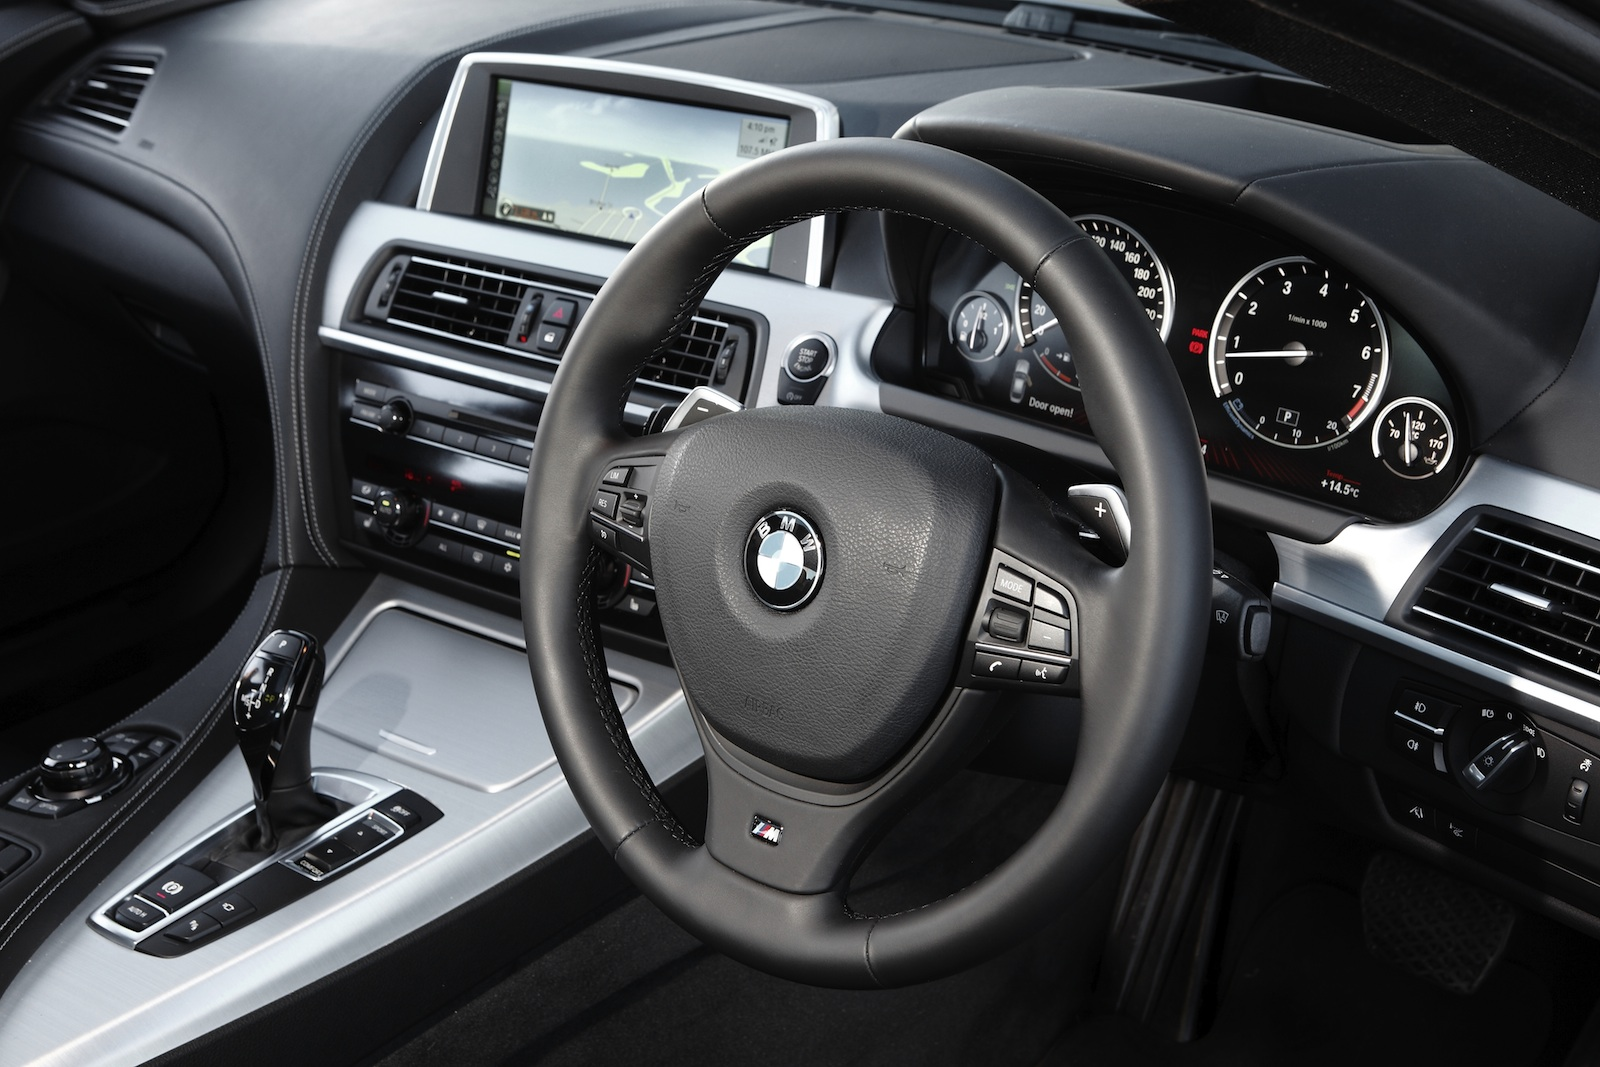 Bmw 650i gran coupe brings updated twin turbo v8 to range photos 1 of 4 - Bmw 650i gran coupe interior ...